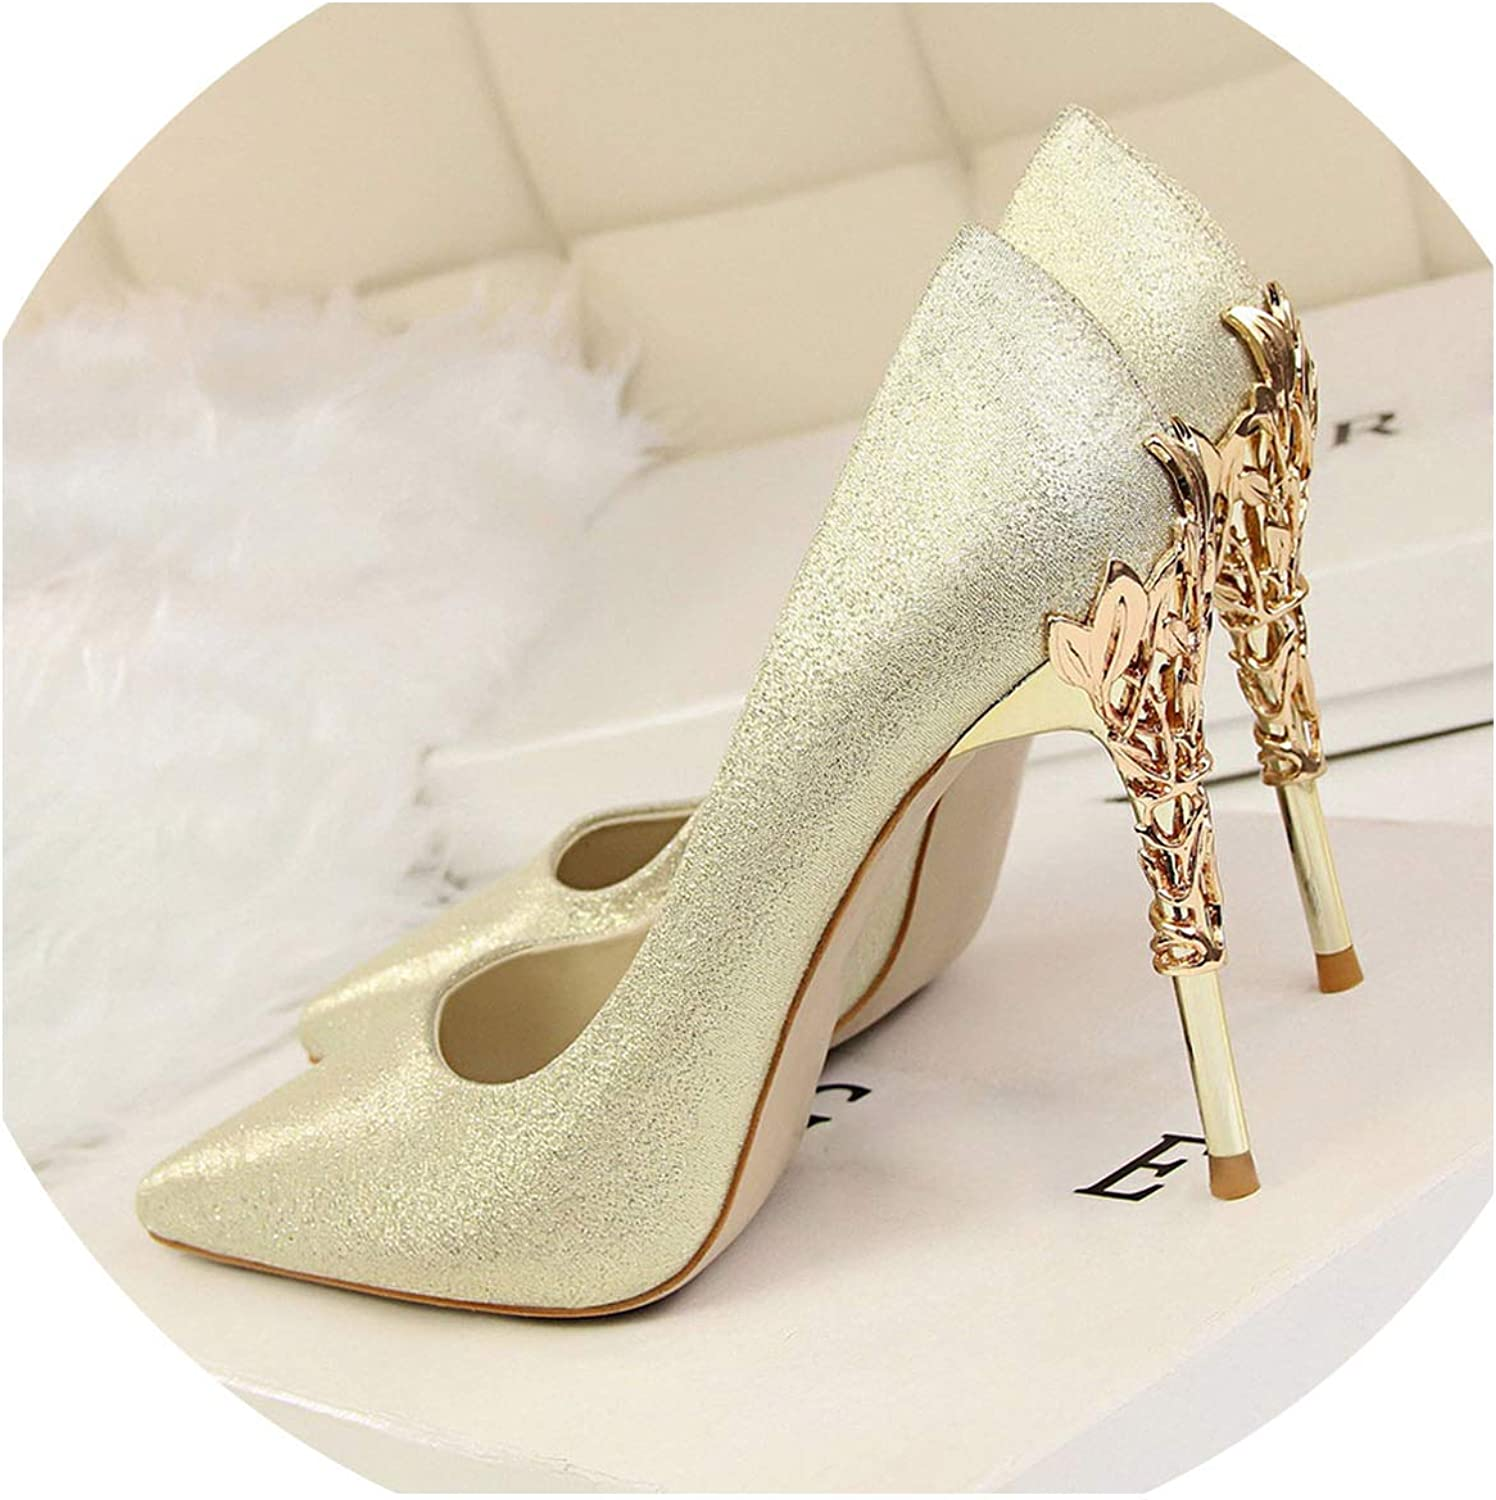 JIESENGTOO 2019 Metal Carving High Heels Woman Pointed Toe Silk Pumps Formal Party Wedding Satin Scarpin